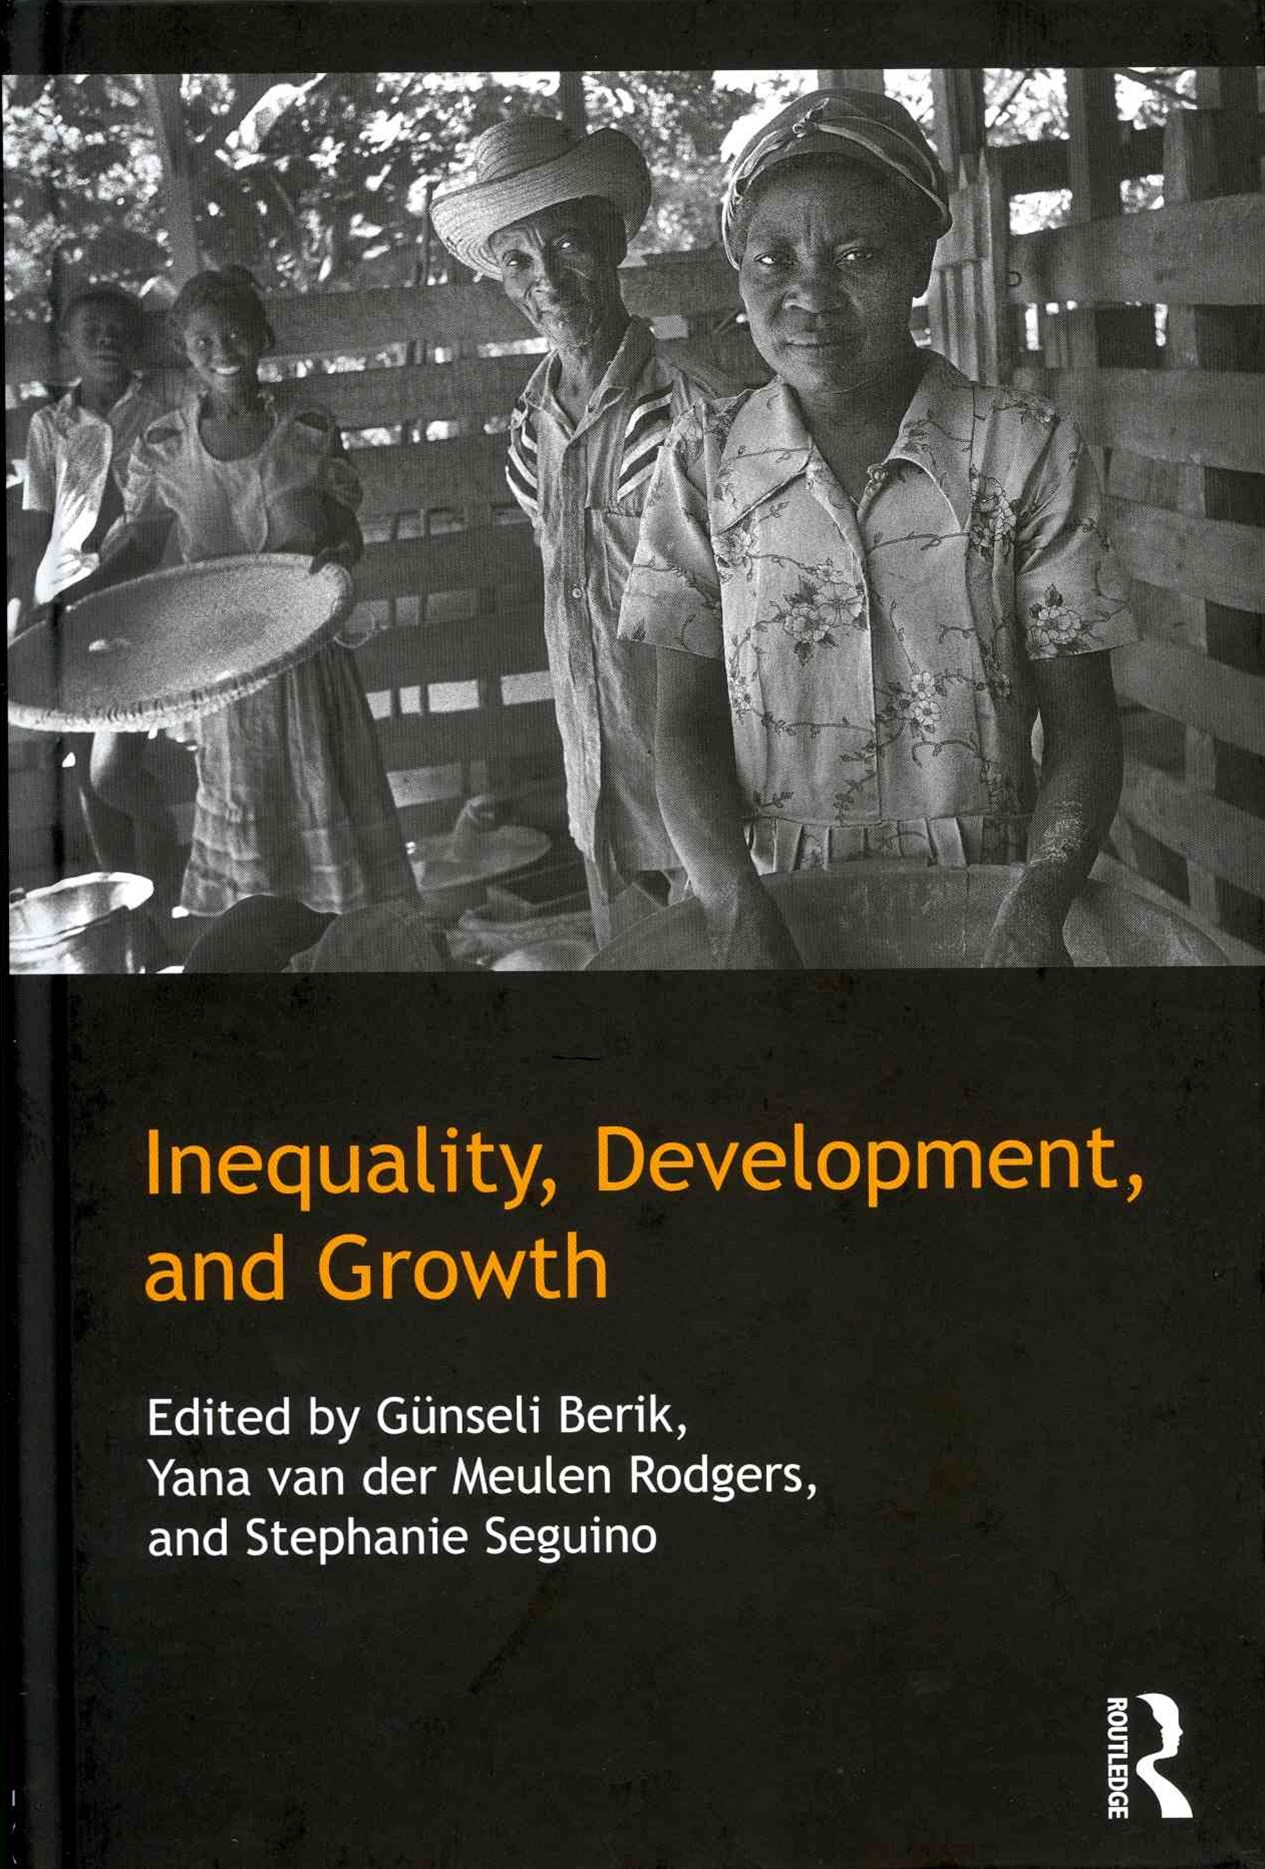 Inequality, Development, and Growth